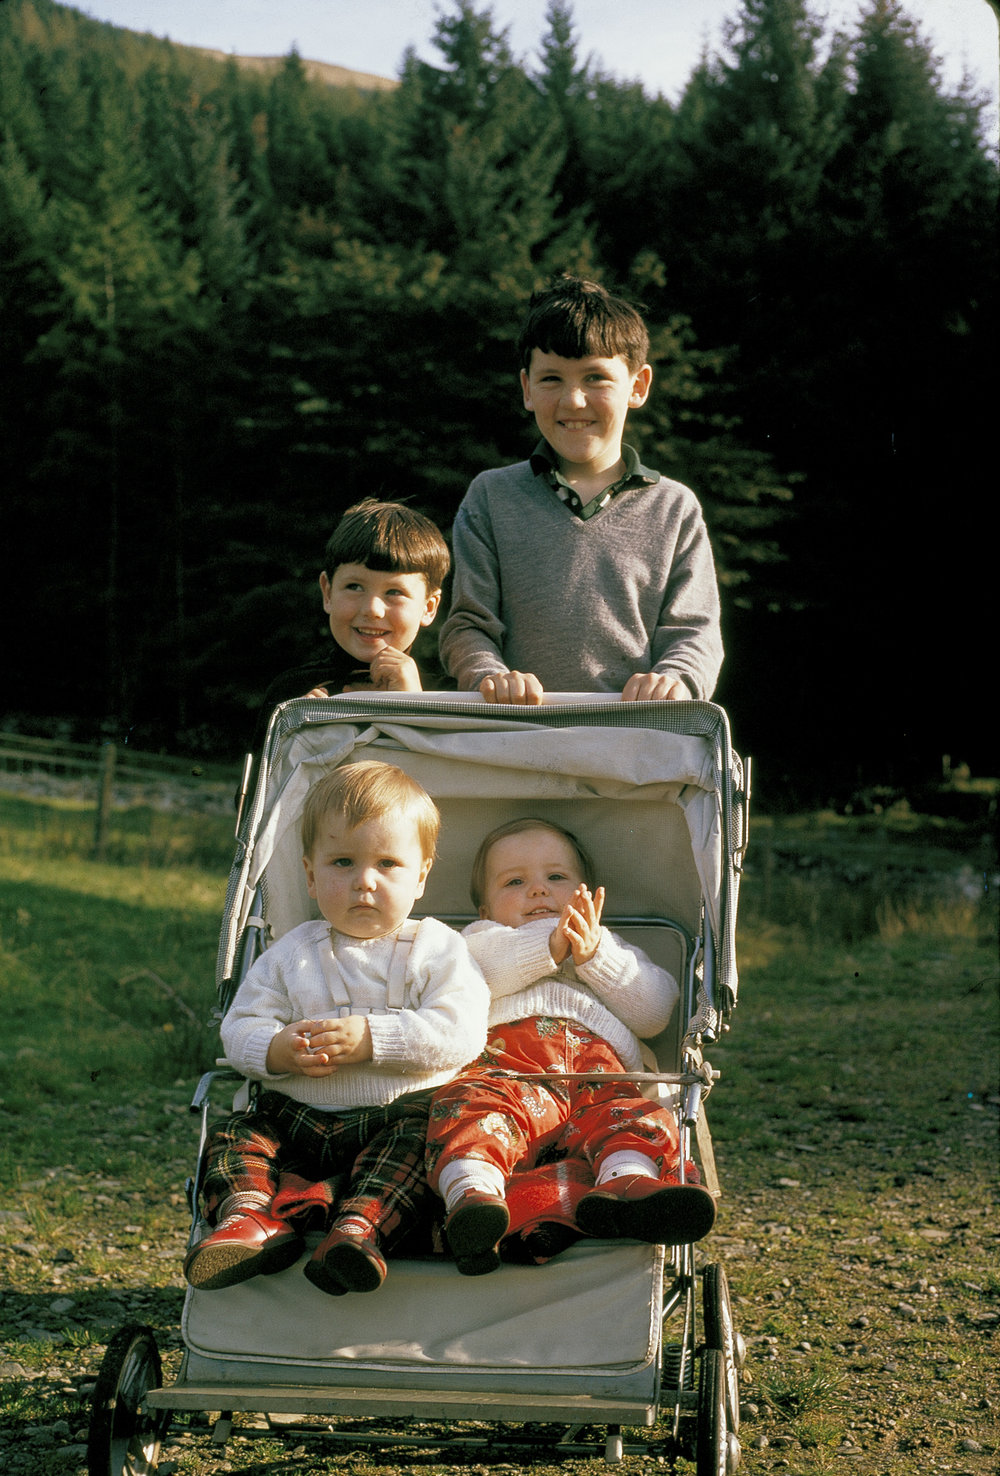 Gavin and his Brothers on the farm in Scotland. Gavin is one of the twins in the buggy.